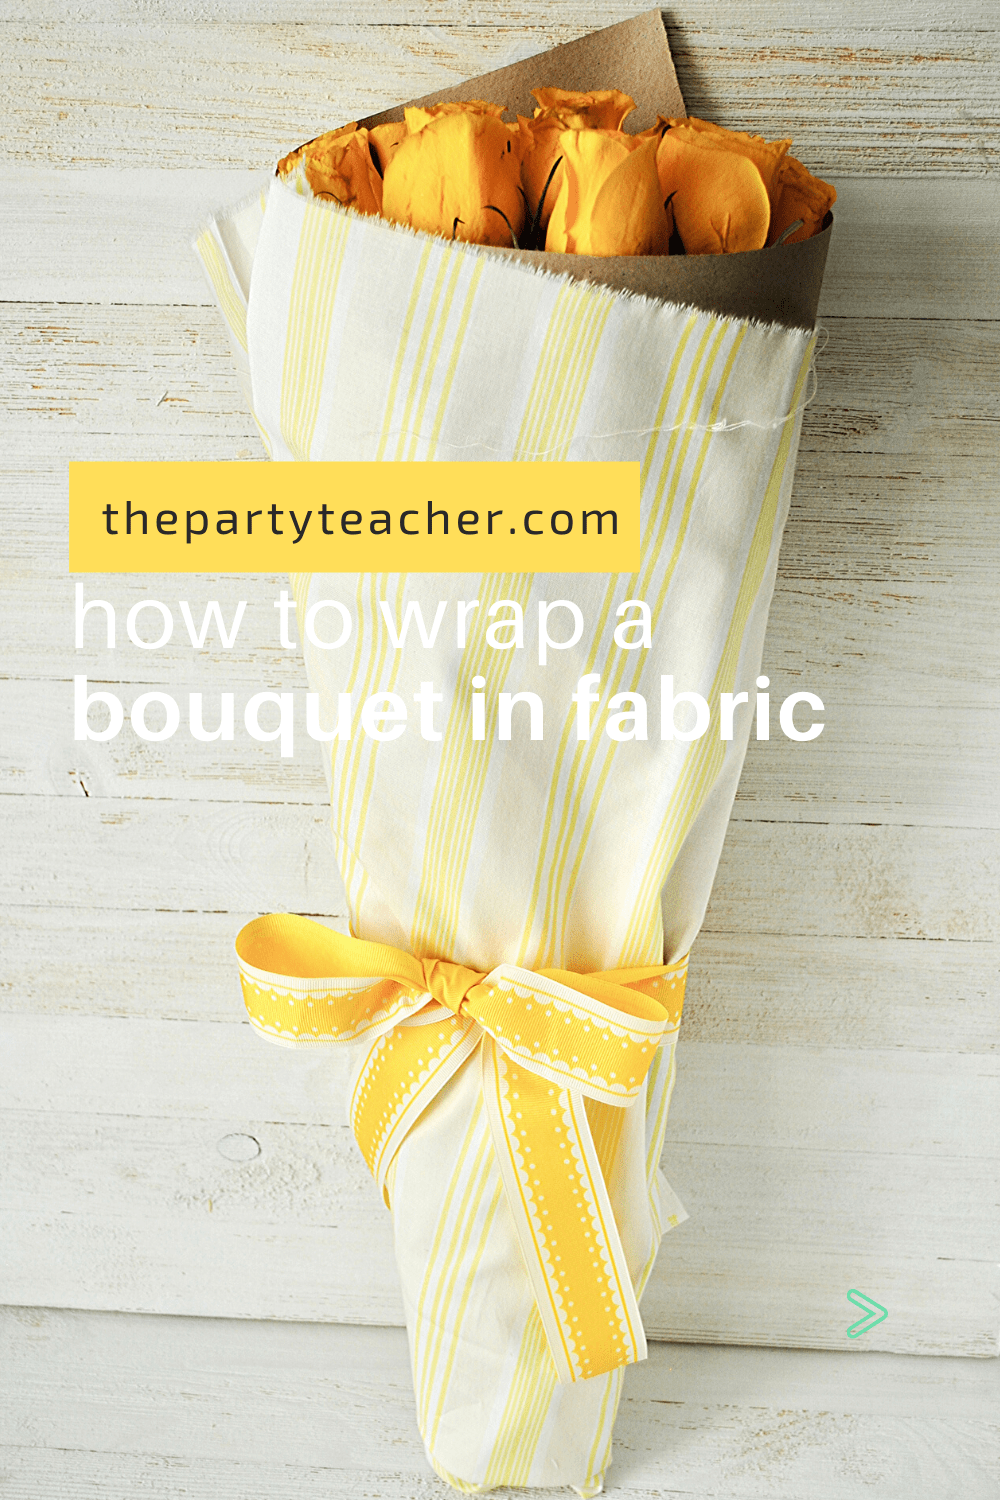 How to wrap bouquet in fabric - The Party Teacher